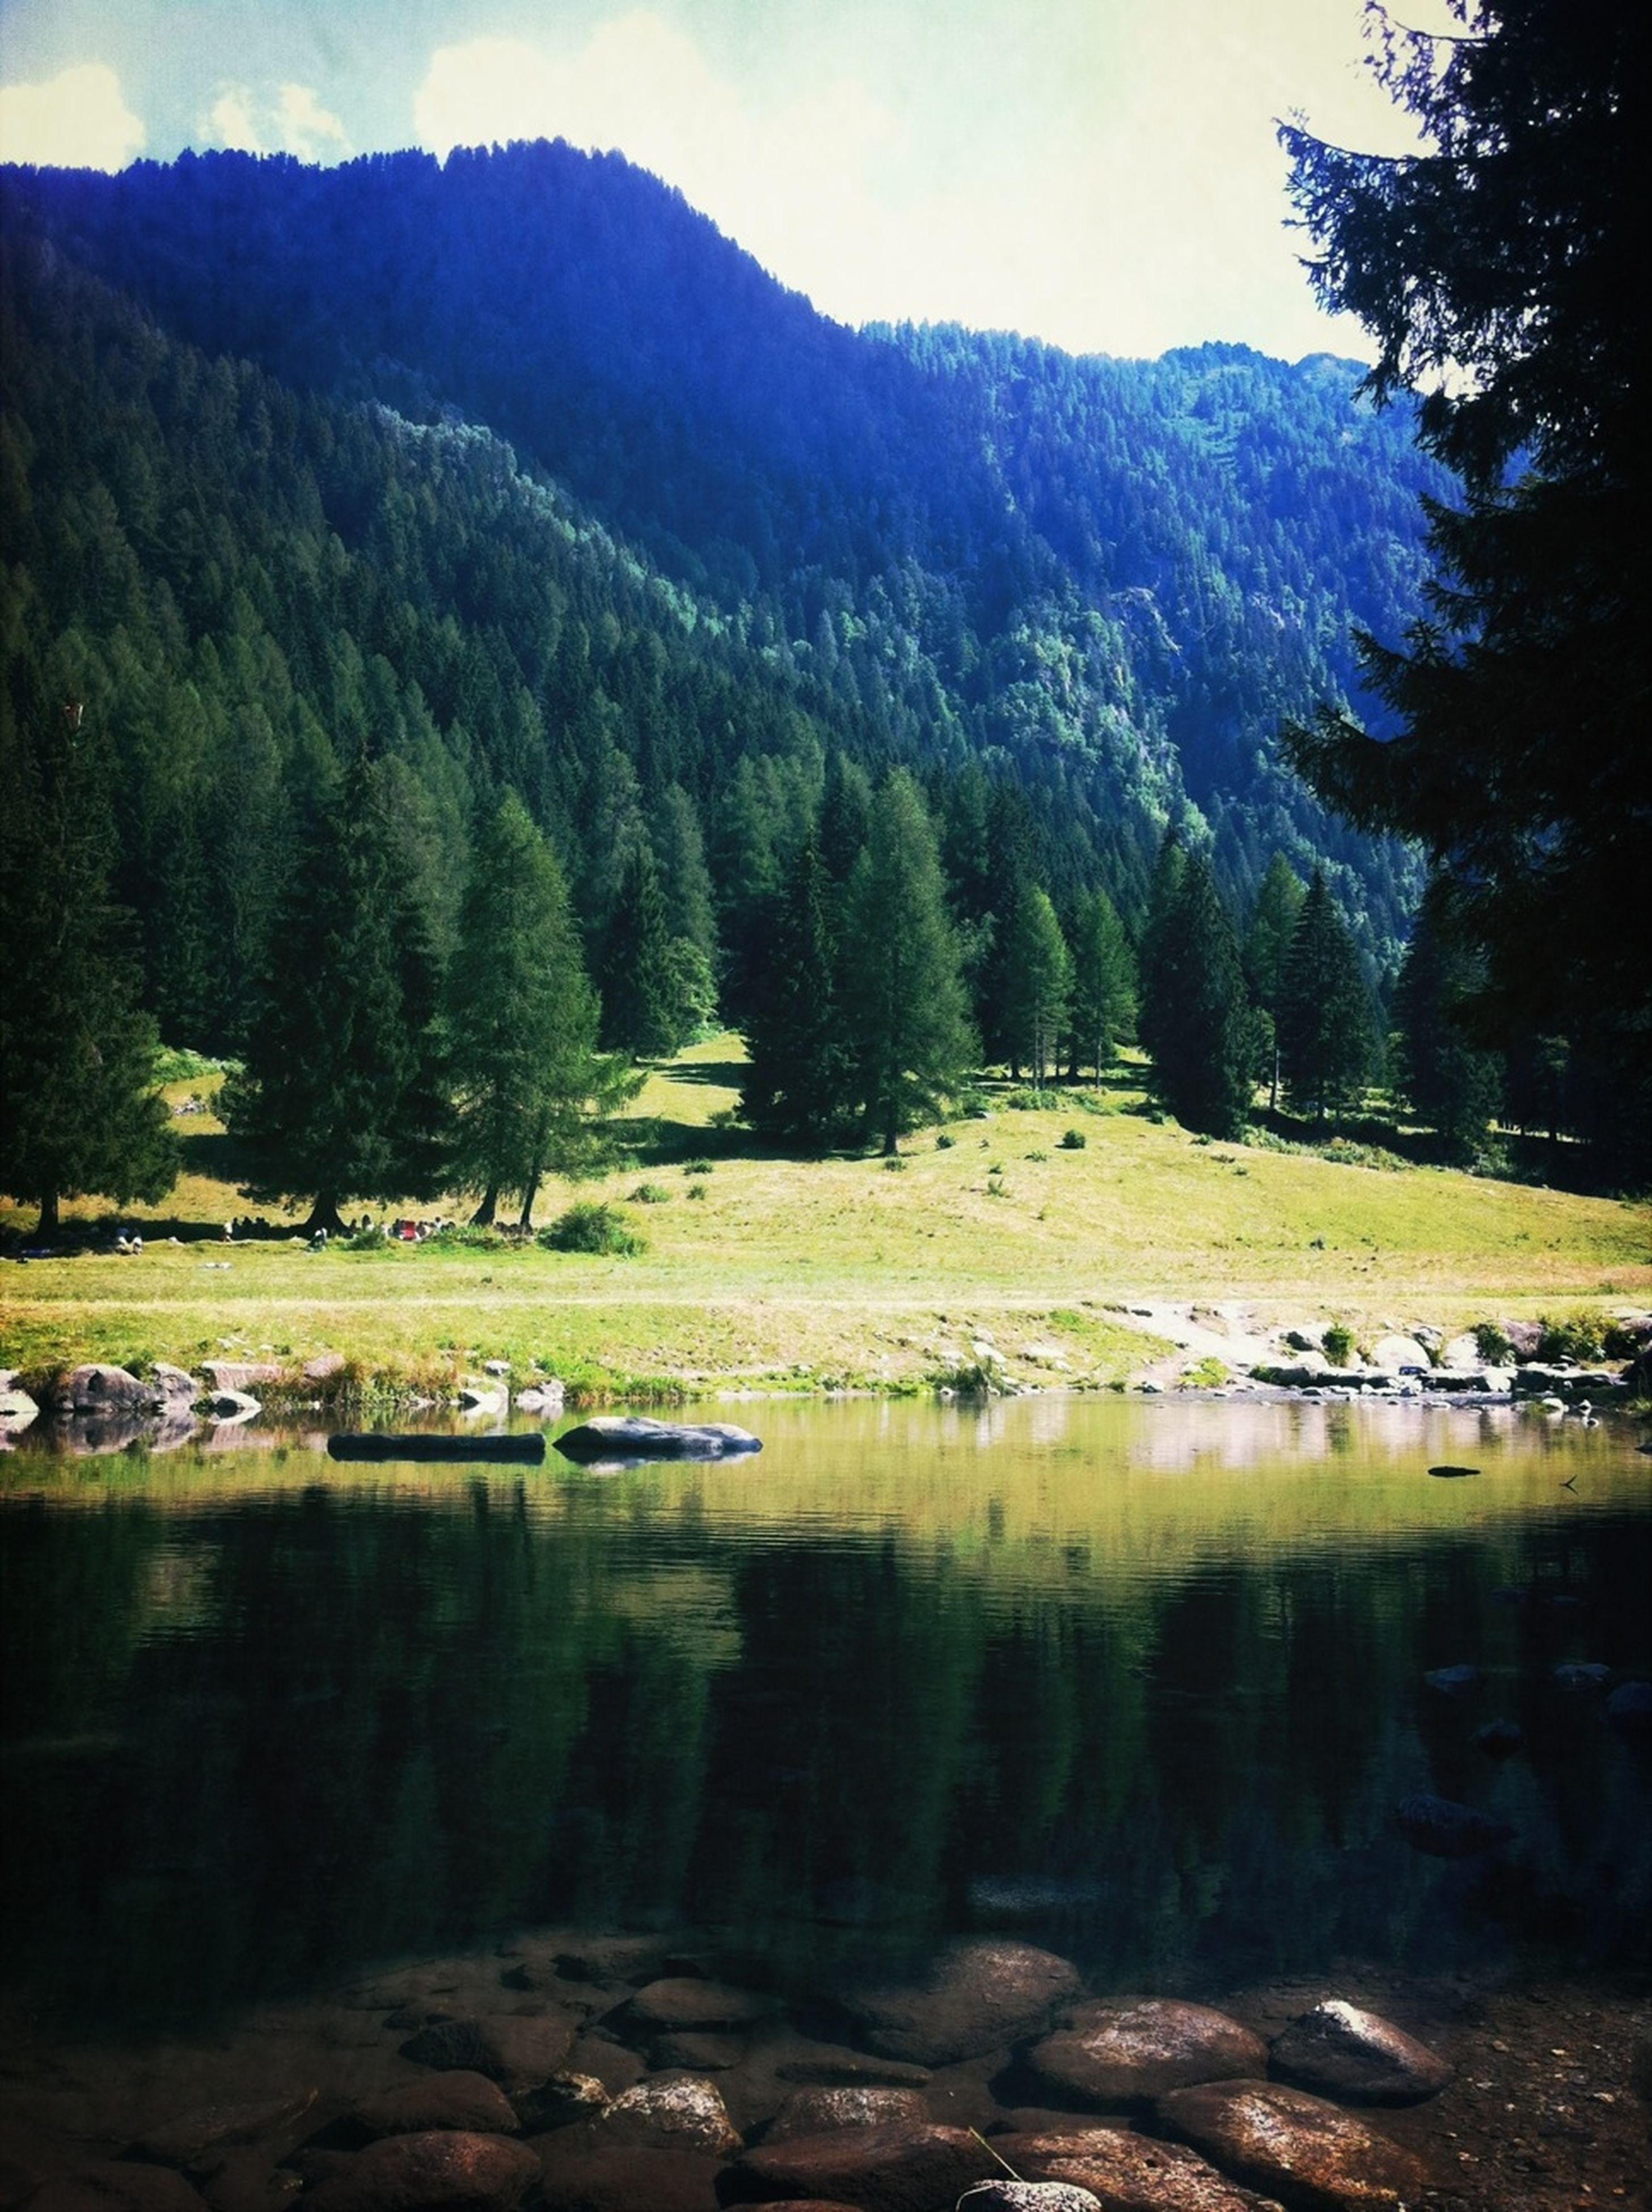 mountain, water, tree, tranquil scene, tranquility, scenics, beauty in nature, lake, nature, reflection, river, forest, mountain range, non-urban scene, landscape, green color, idyllic, growth, day, stream